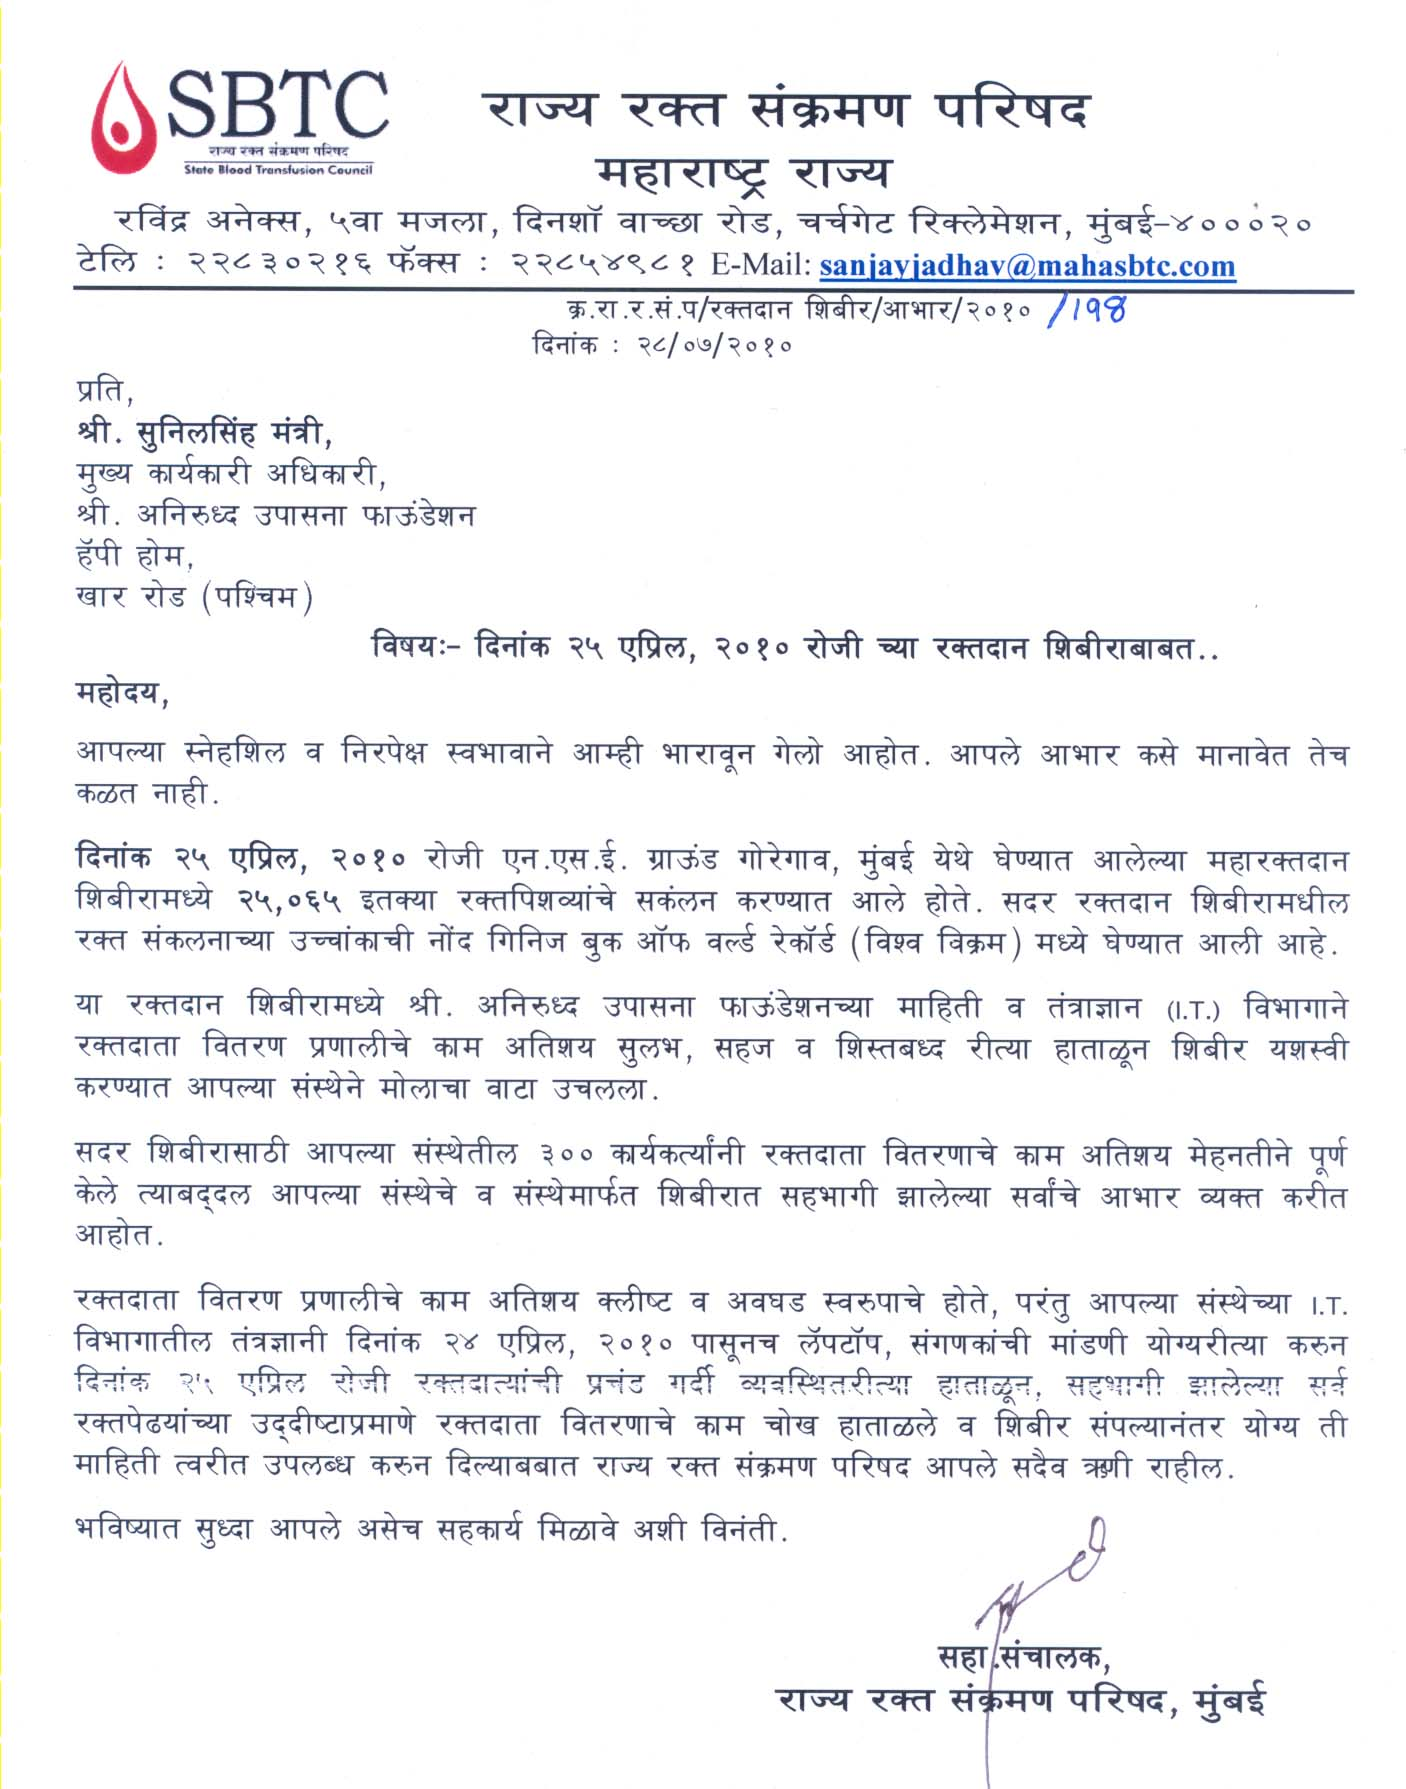 Invitation Letter Format For Blood Donation Camp Image ...